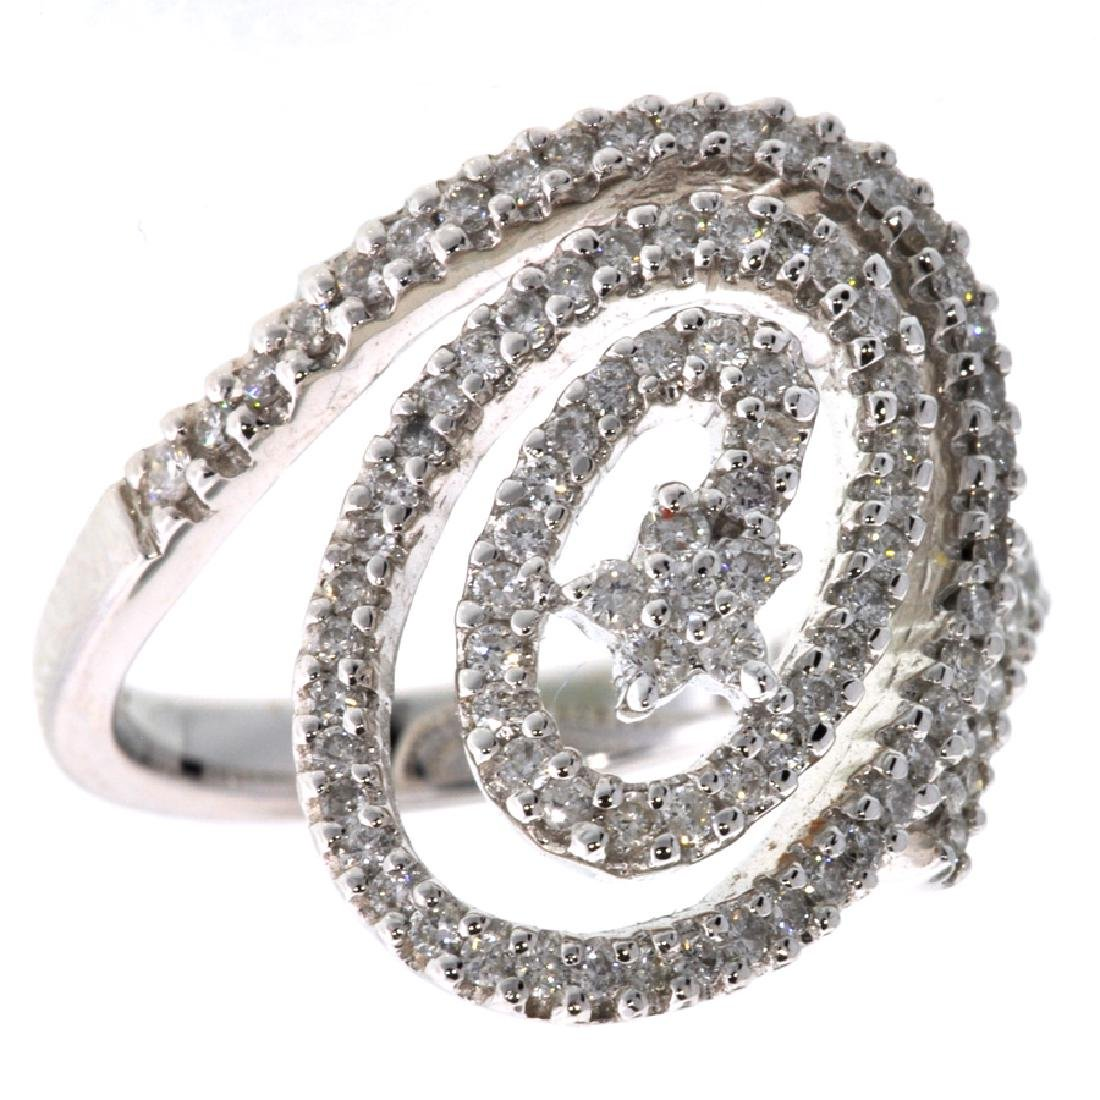 APP: 5k *18 kt. White Gold, 0.70CT Diamond Ring